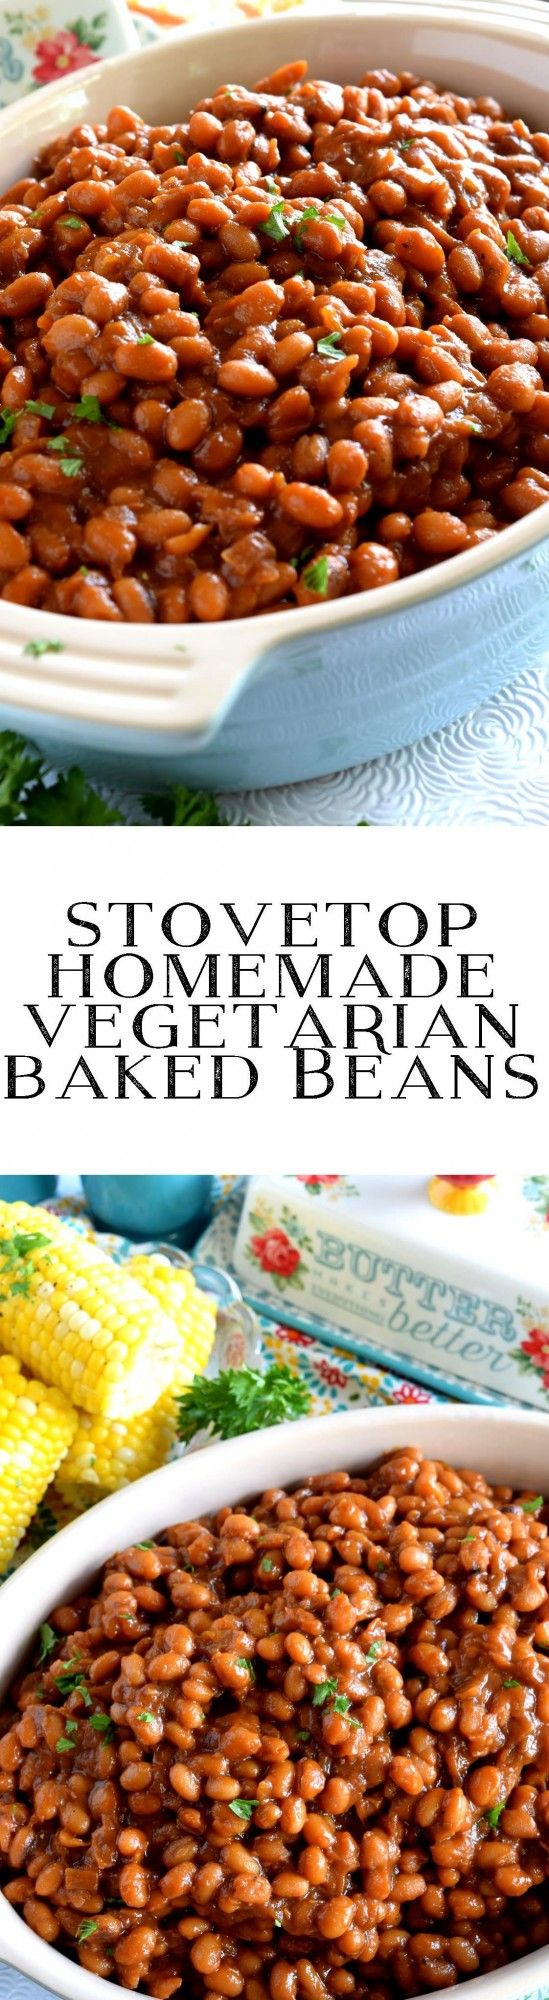 Stovetop Homemade Vegetarian Baked Beans - Lord Byron's Kitchen